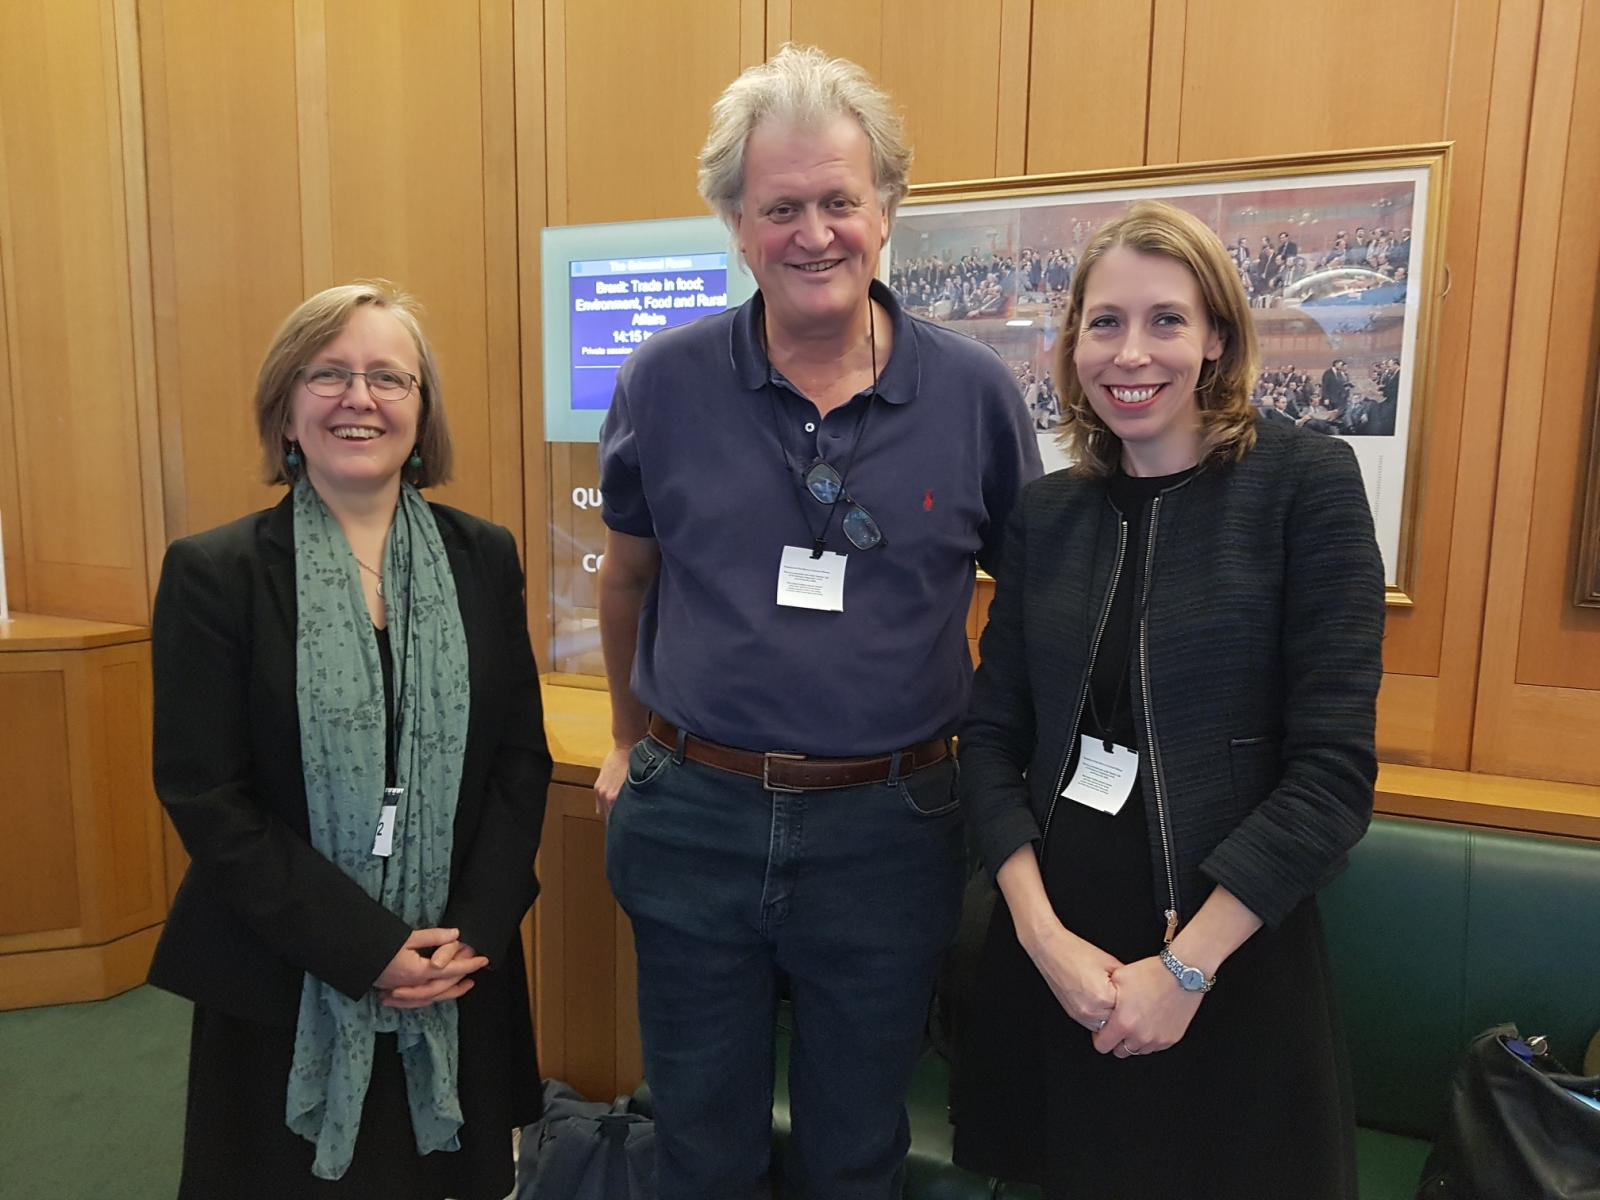 Sustain's chief executive Kath Dalmeny (left) gave evidence in a session with Tim Martin (centre), Chair of the pub chain Wetherspoon and Sue Davies, Strategic Policy Adviser for Which? (Consumers Association) (right).The session was recorded on vide